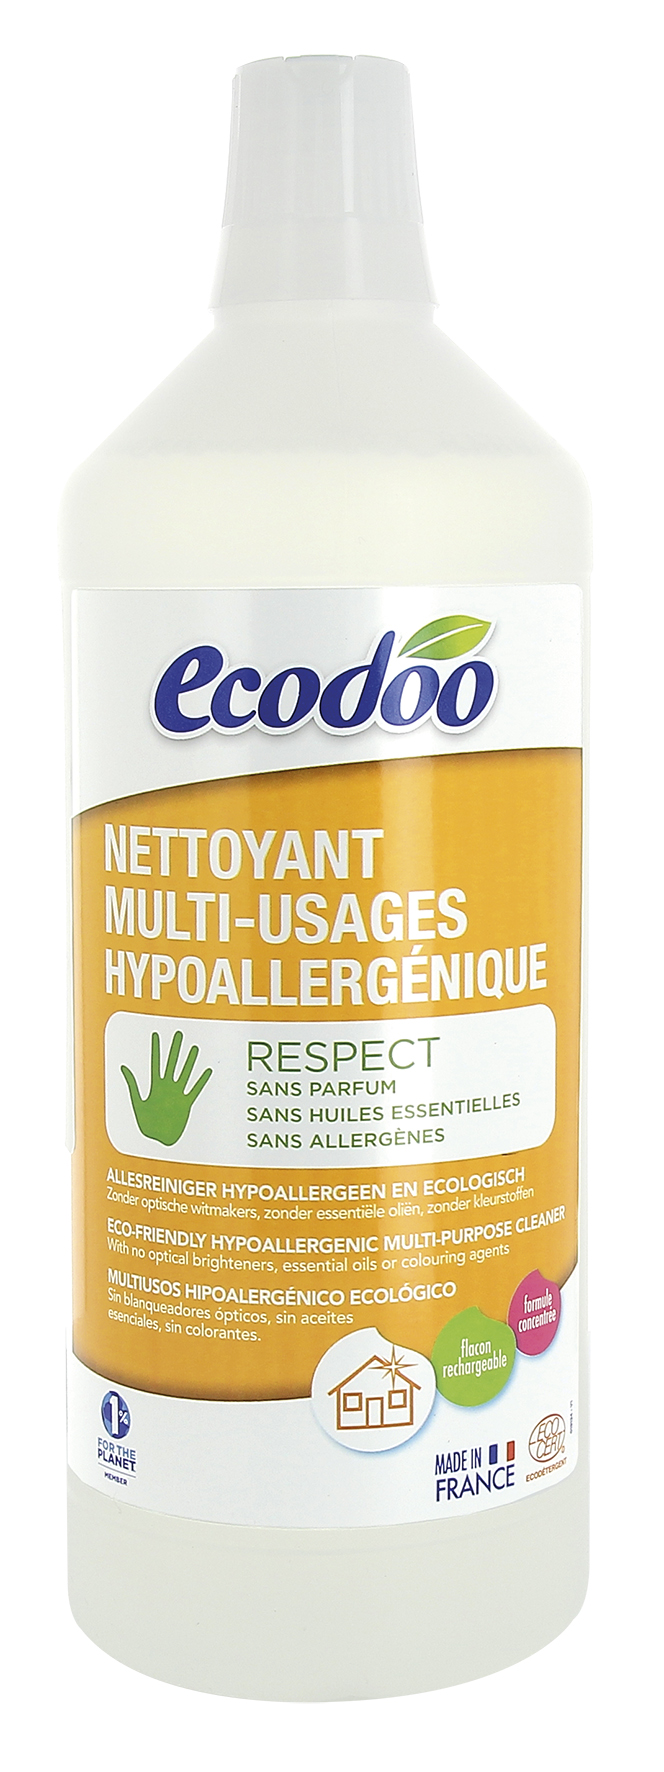 Nettoyant hypoallergénique multi-usages, Ecodoo (1 L)